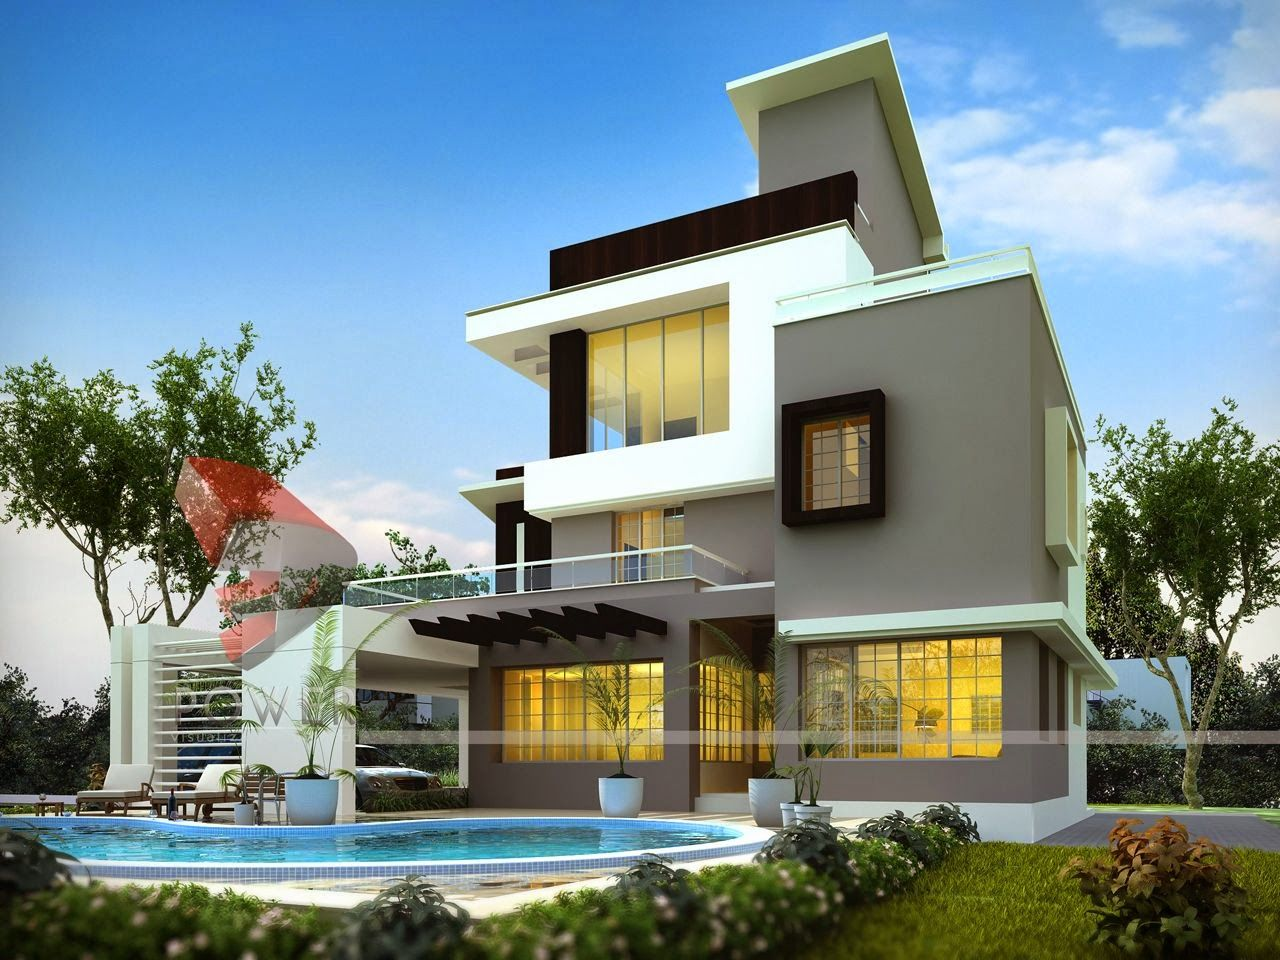 3D+Rendering+Modern+Bungalow.JPG (1280×960) | residence elevations ...